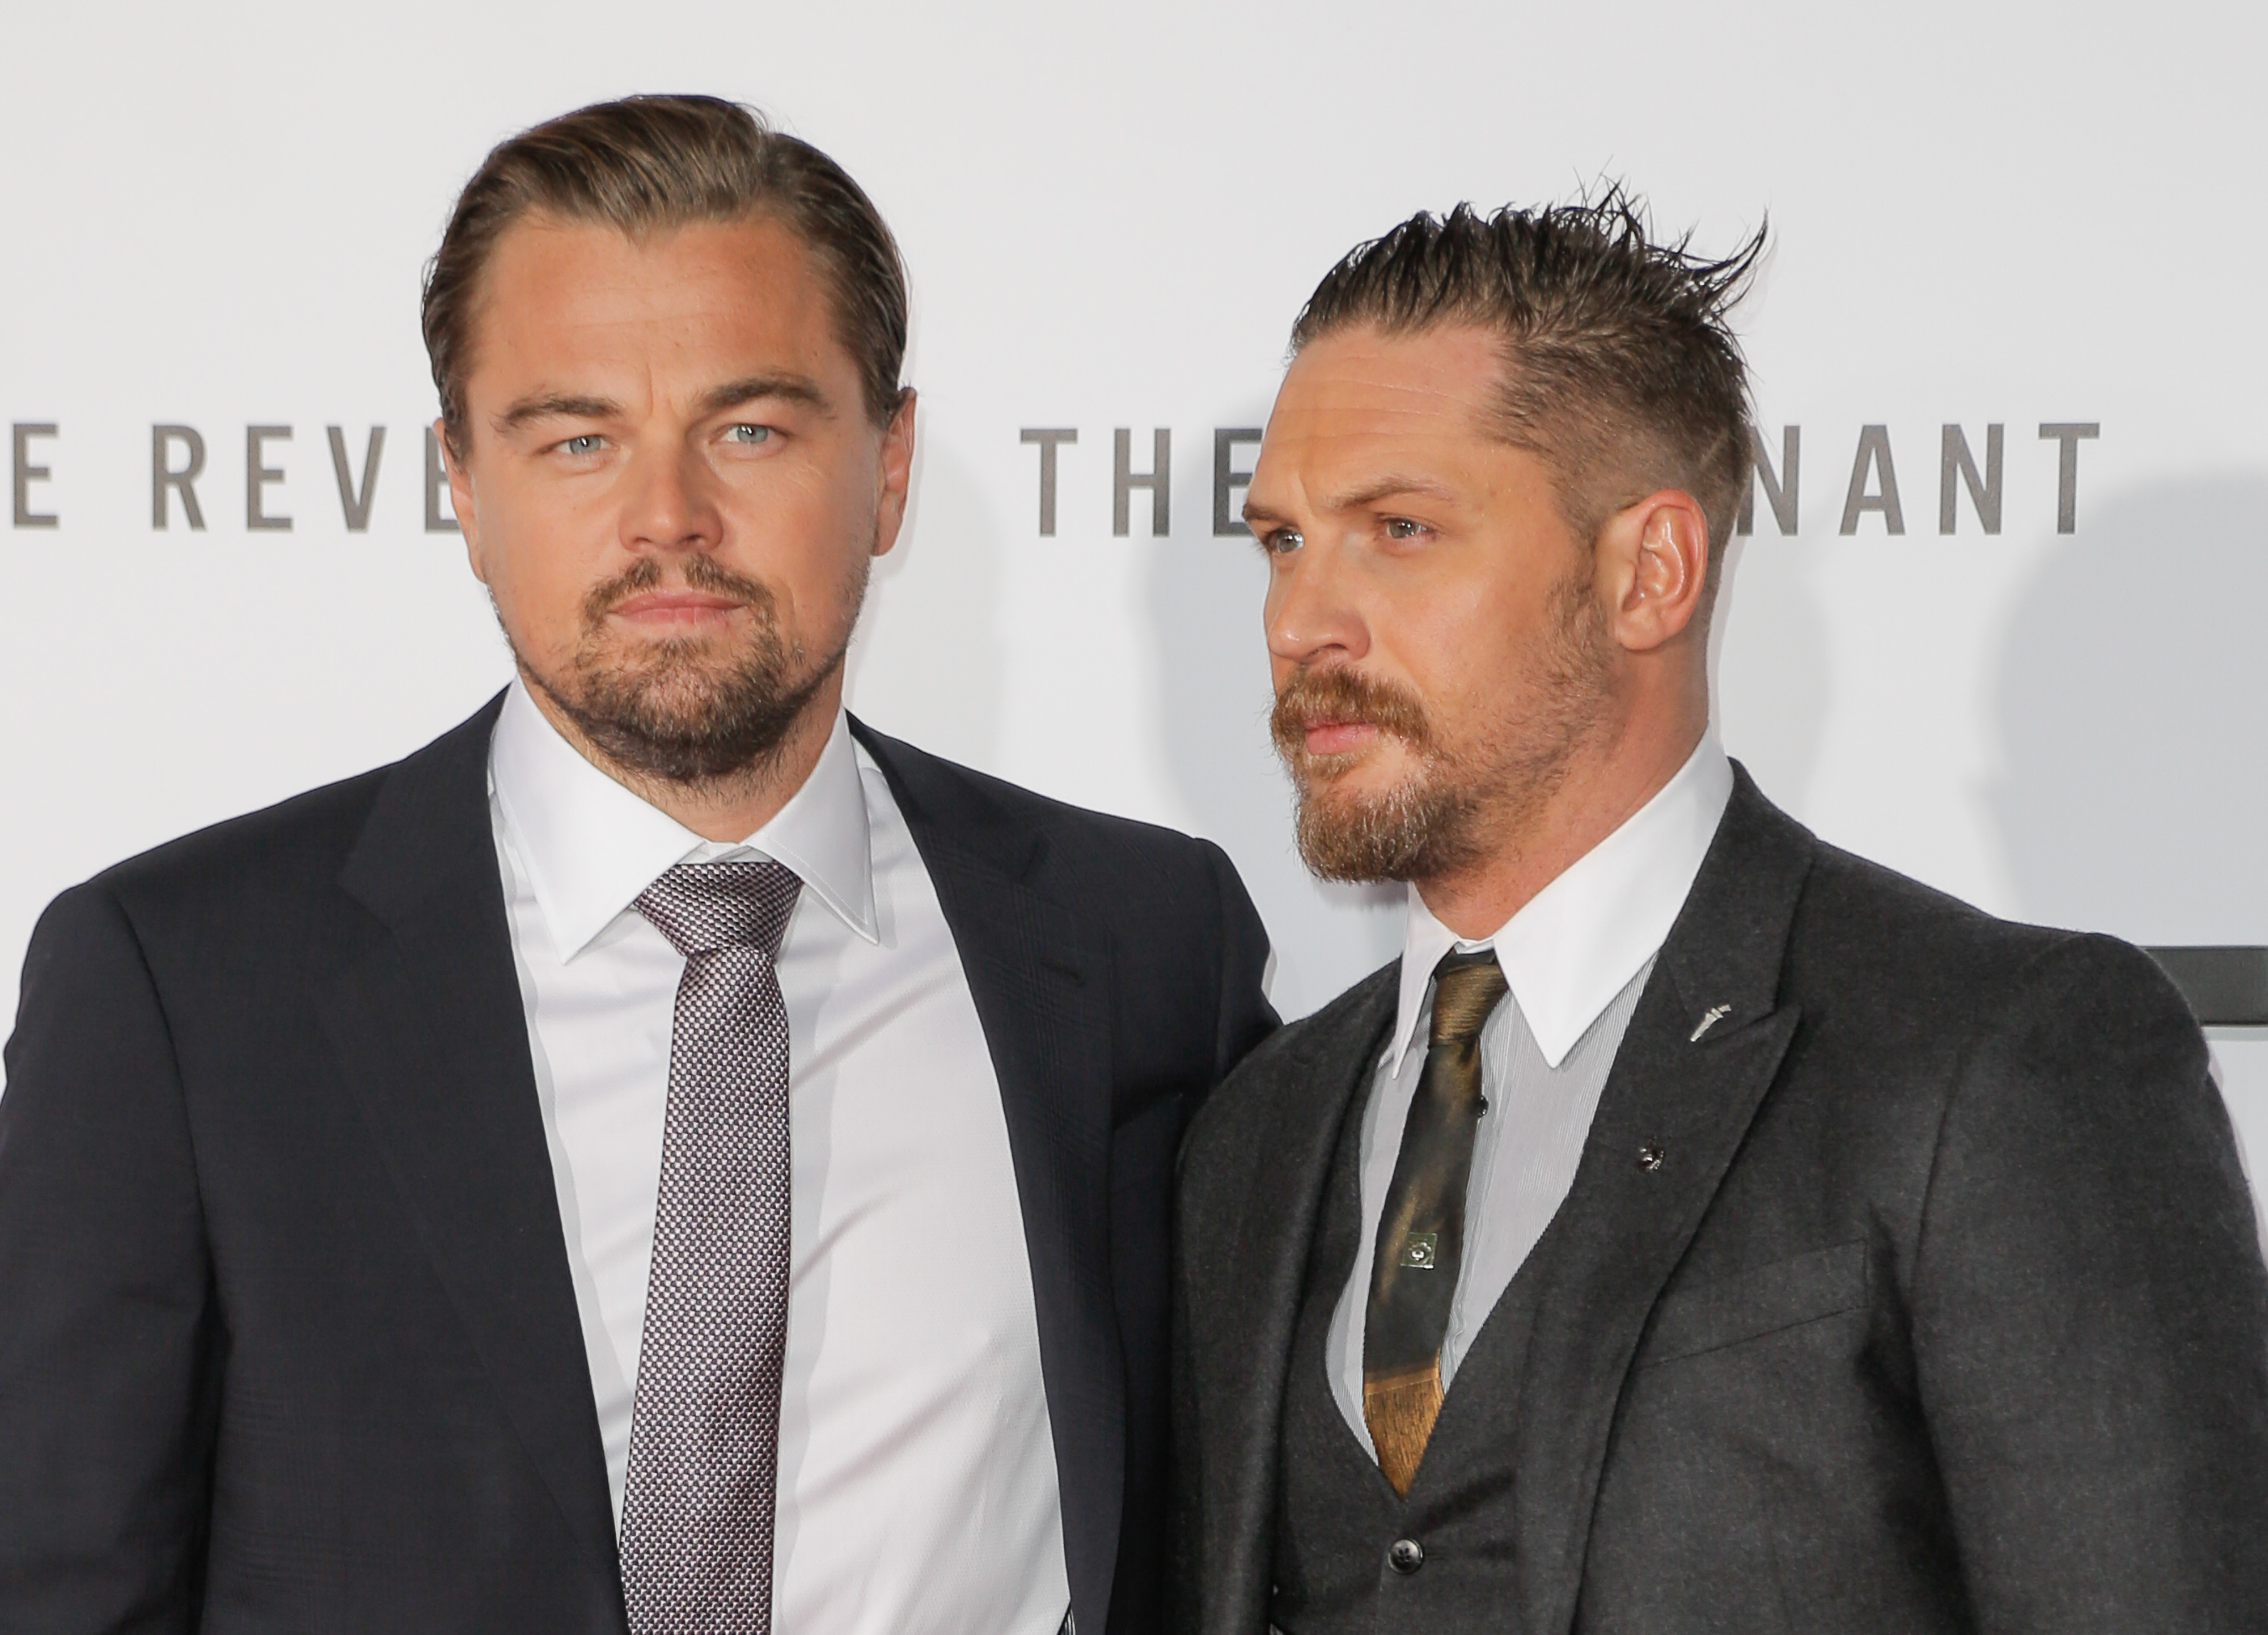 tom hardy finally got that leo knows all tattoo after